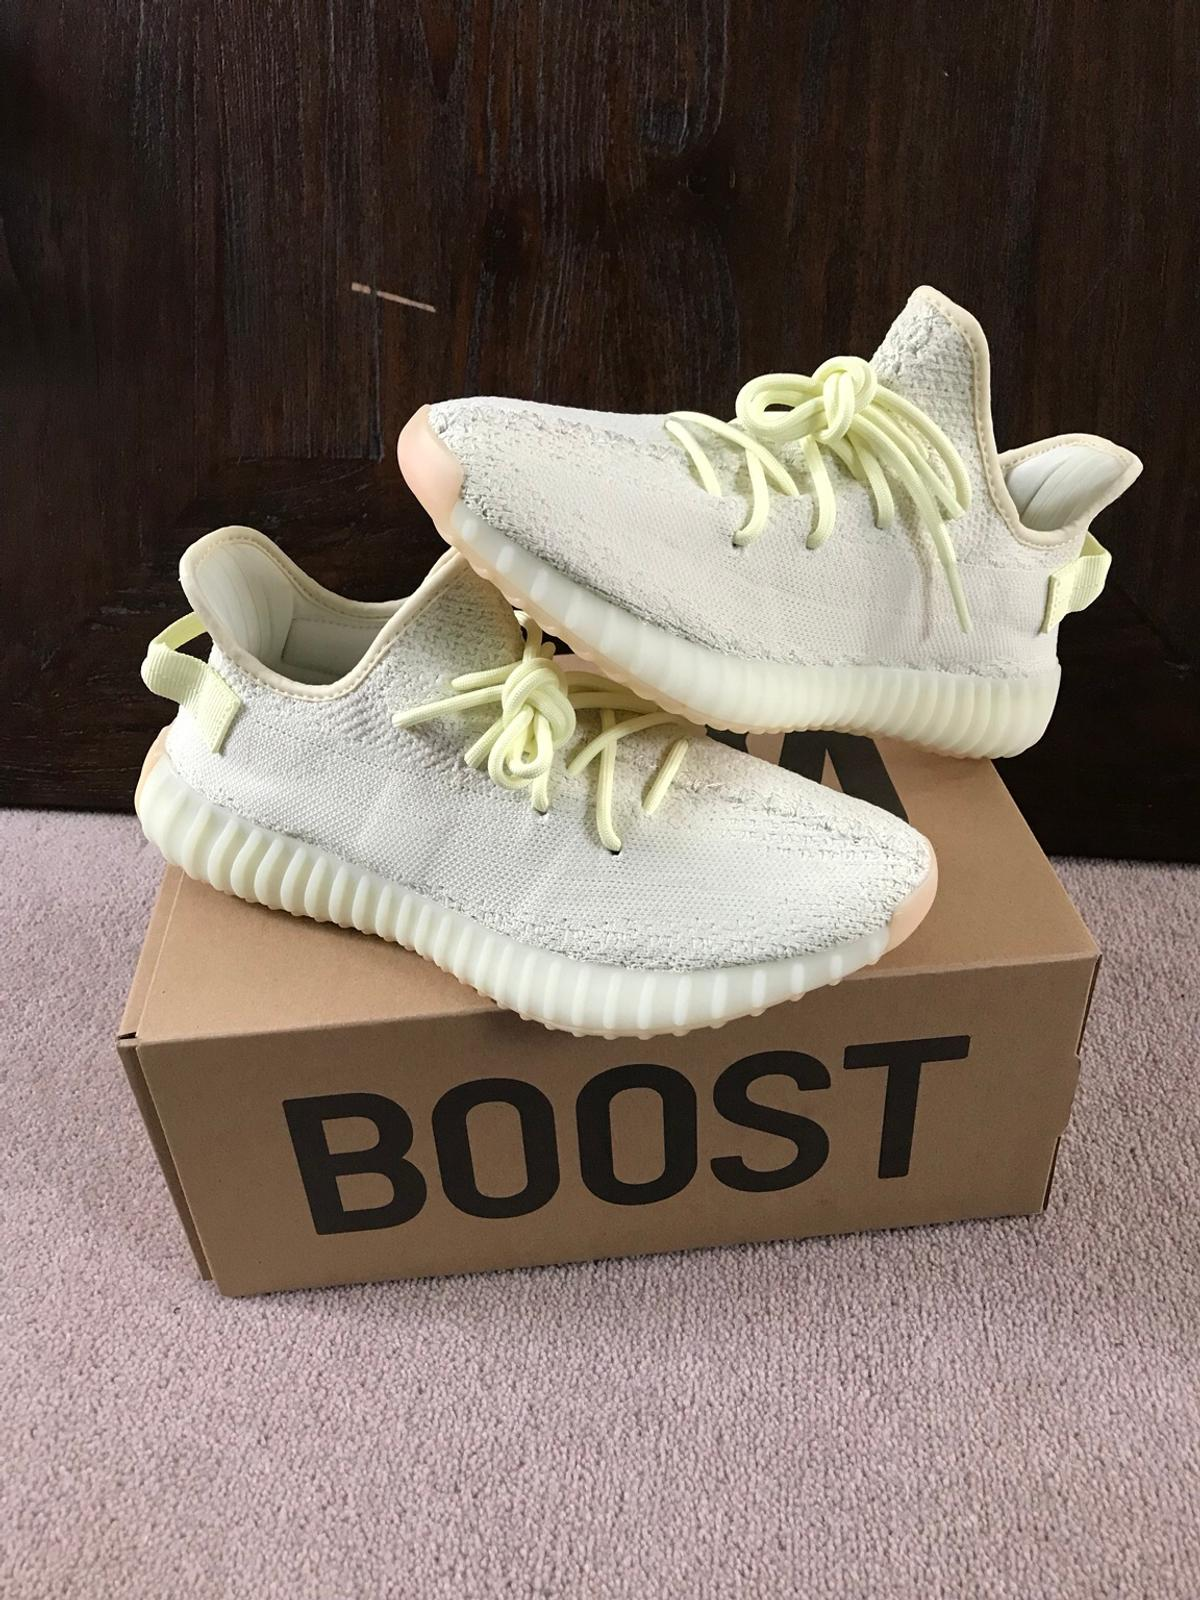 5b452e07625b2 YEEZY BOOST 350 V2 BUTTER - UK SIZE 8 in IG1 London for £200.00 for ...